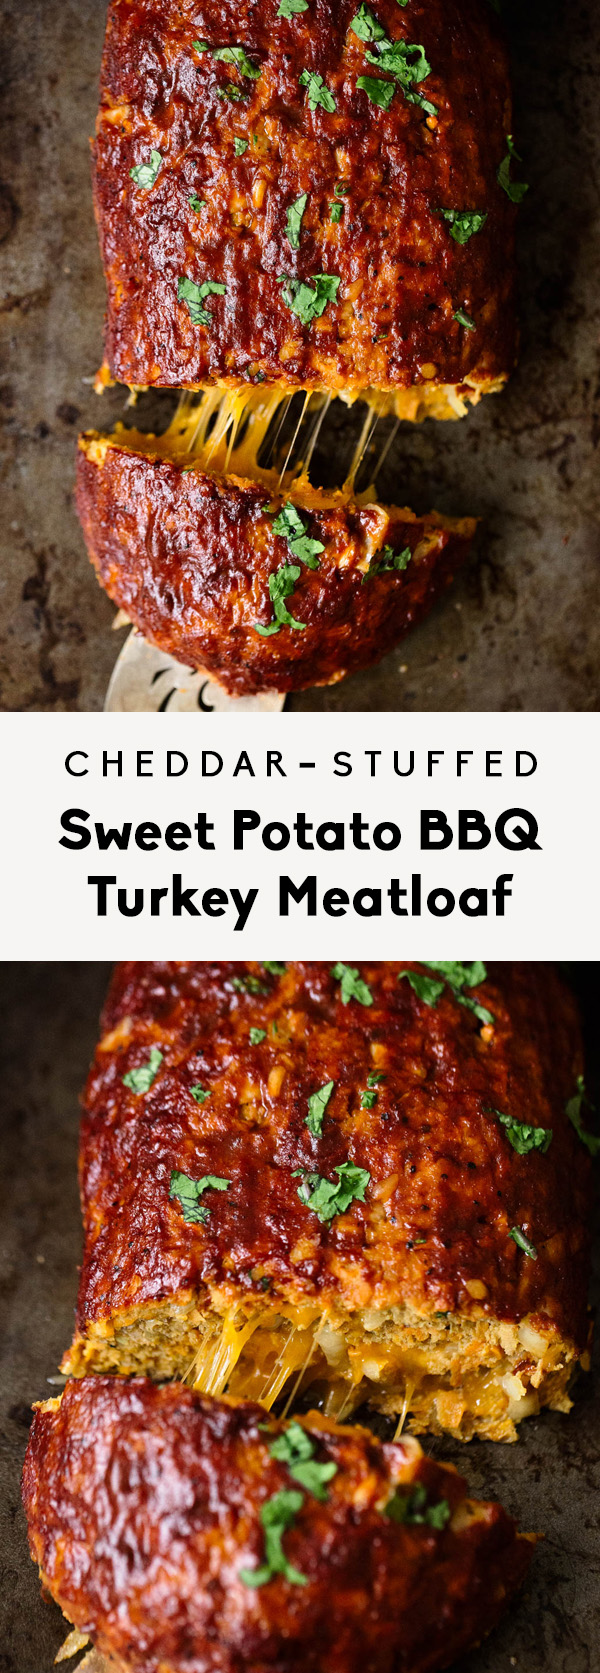 collage of cheddar-stuffed sweet potato bbq turkey meatloaf